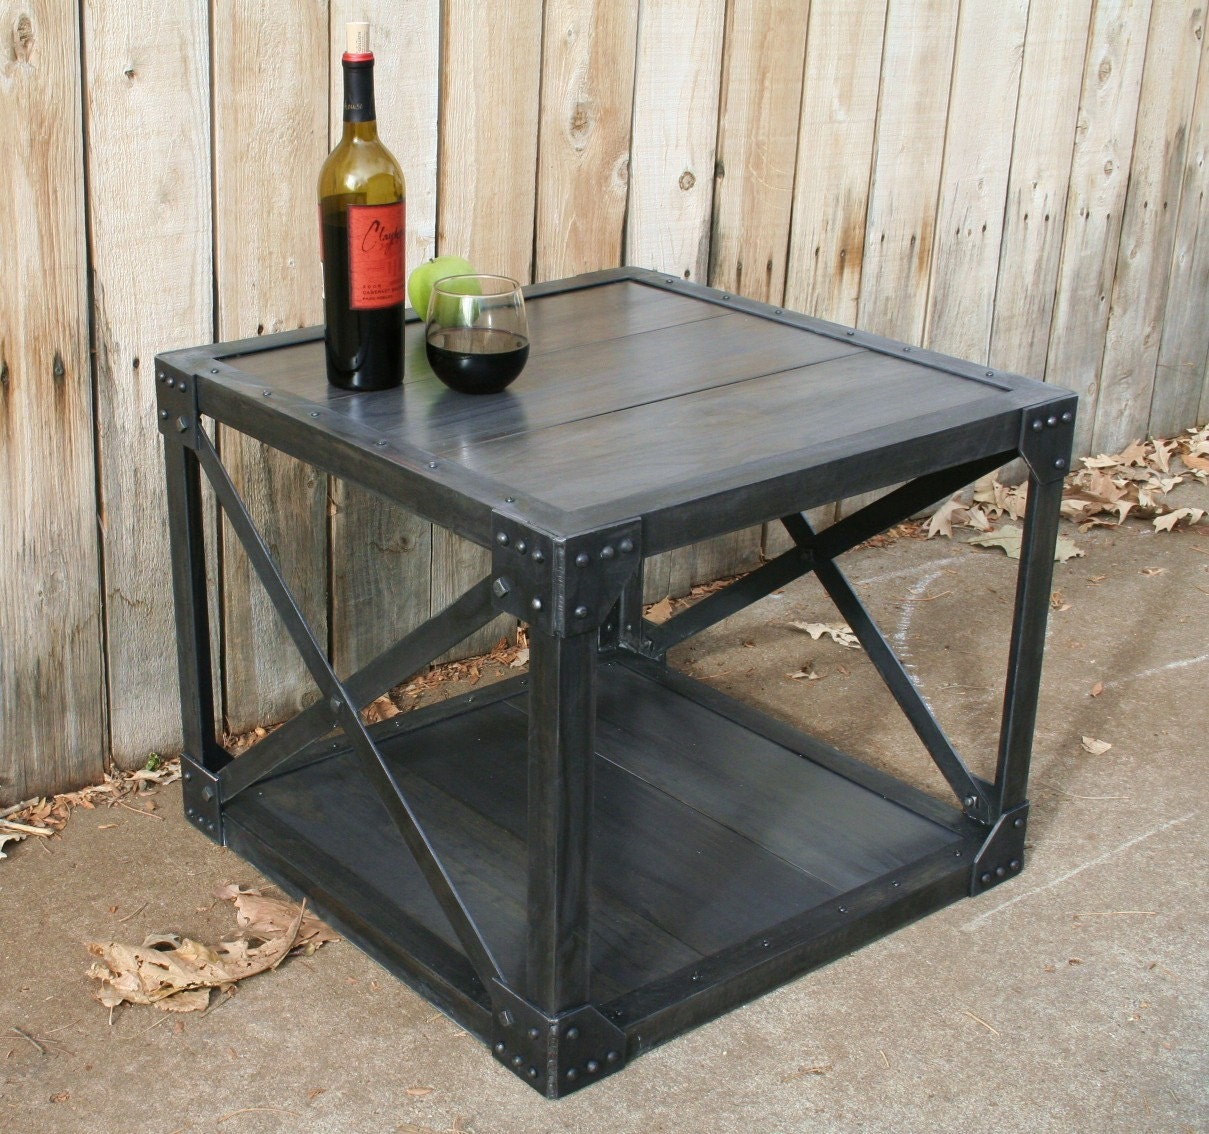 Vintage handmade wood metal industrial coffee table urban Industrial metal coffee table